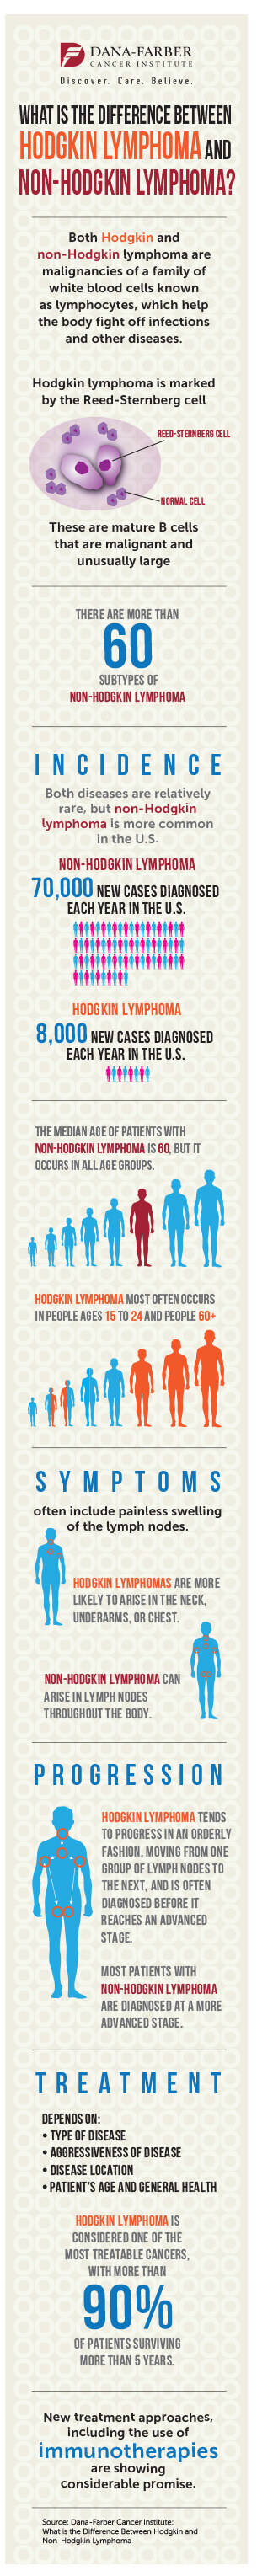 what\u0027s the difference between hodgkin and non hodgkin lymphoma?both diseases are relatively rare, but non hodgkin lymphoma is more common in the united states, with more than 70,000 new cases diagnosed each year,